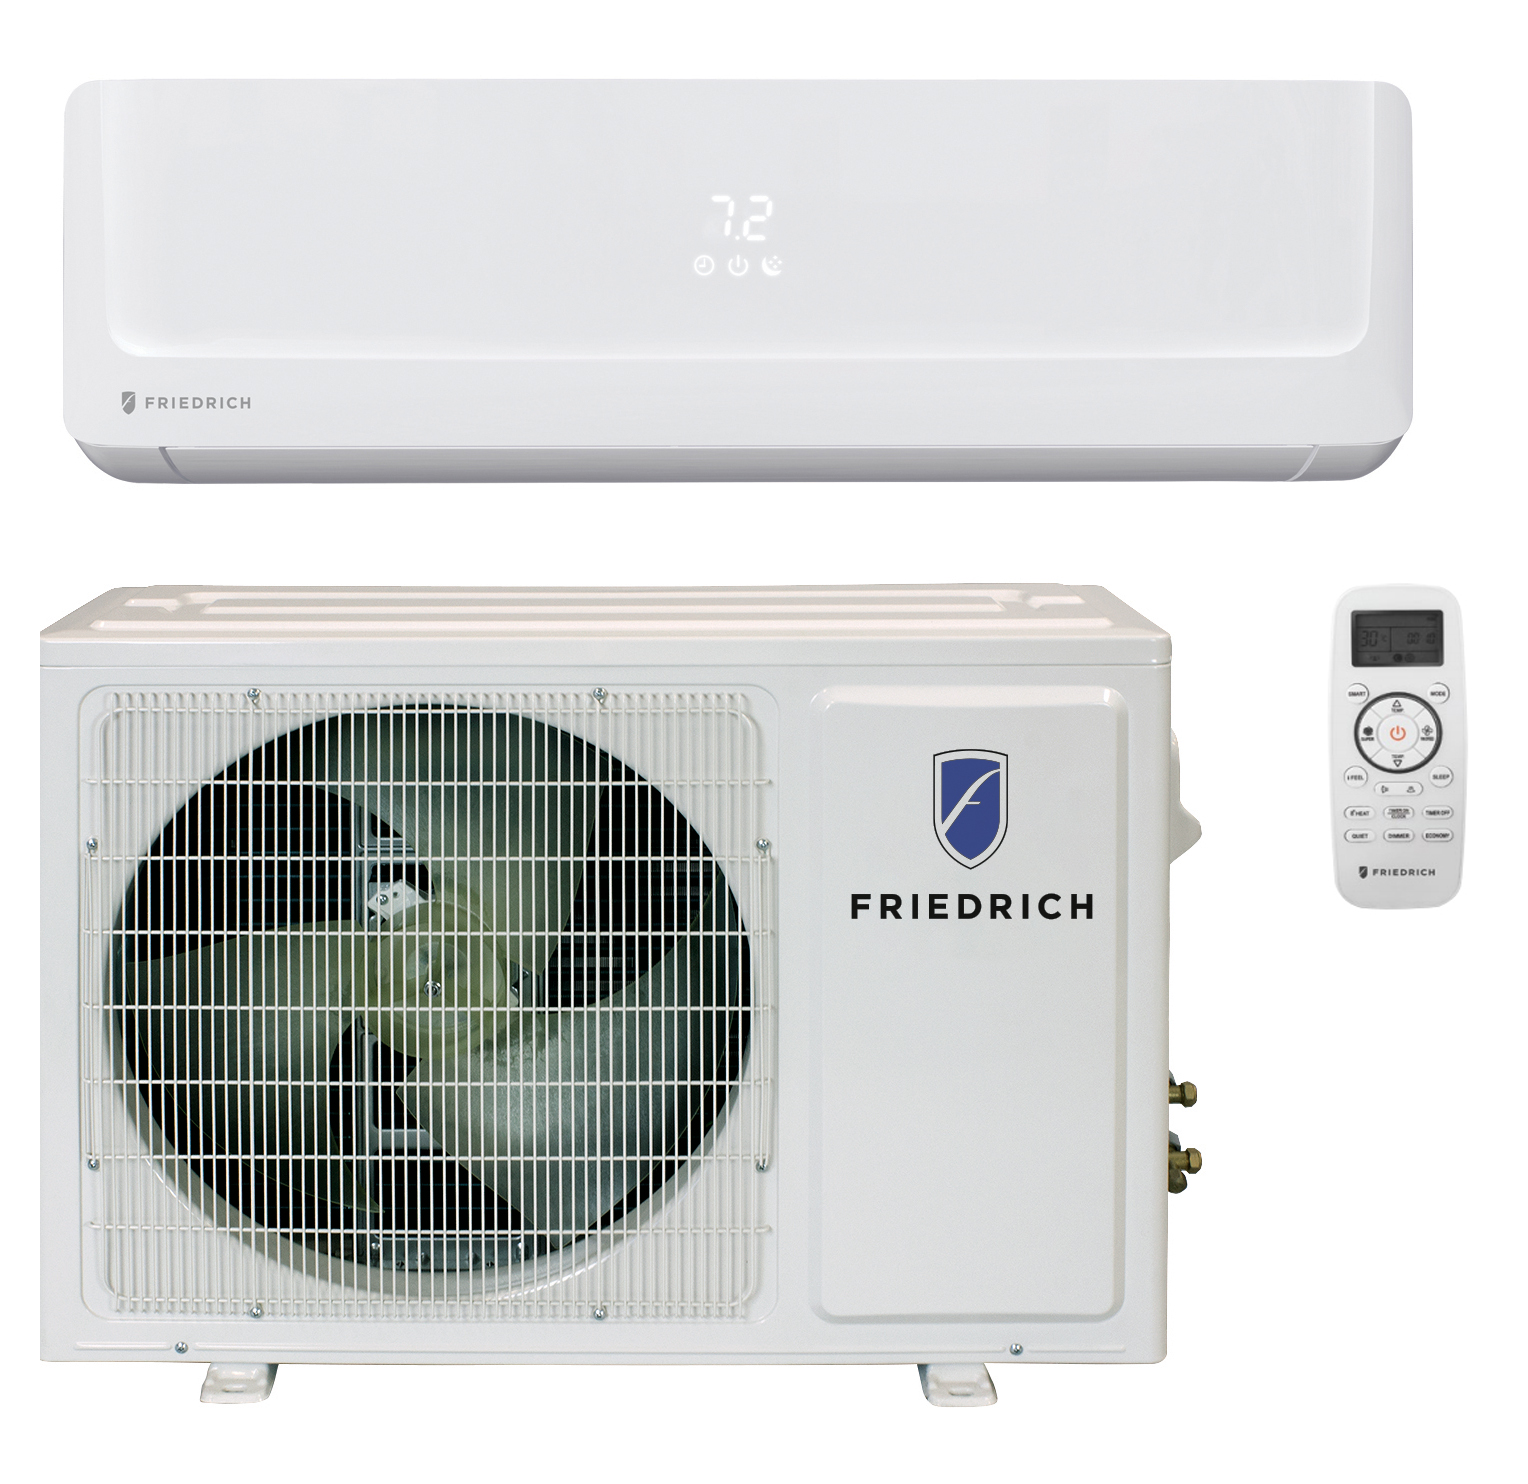 Friedrich FPHW123A 9000 BTU Floating Air Pro Series Single Zone Mini Split with Built-In WiFi - Heat and Cool - Energy Star